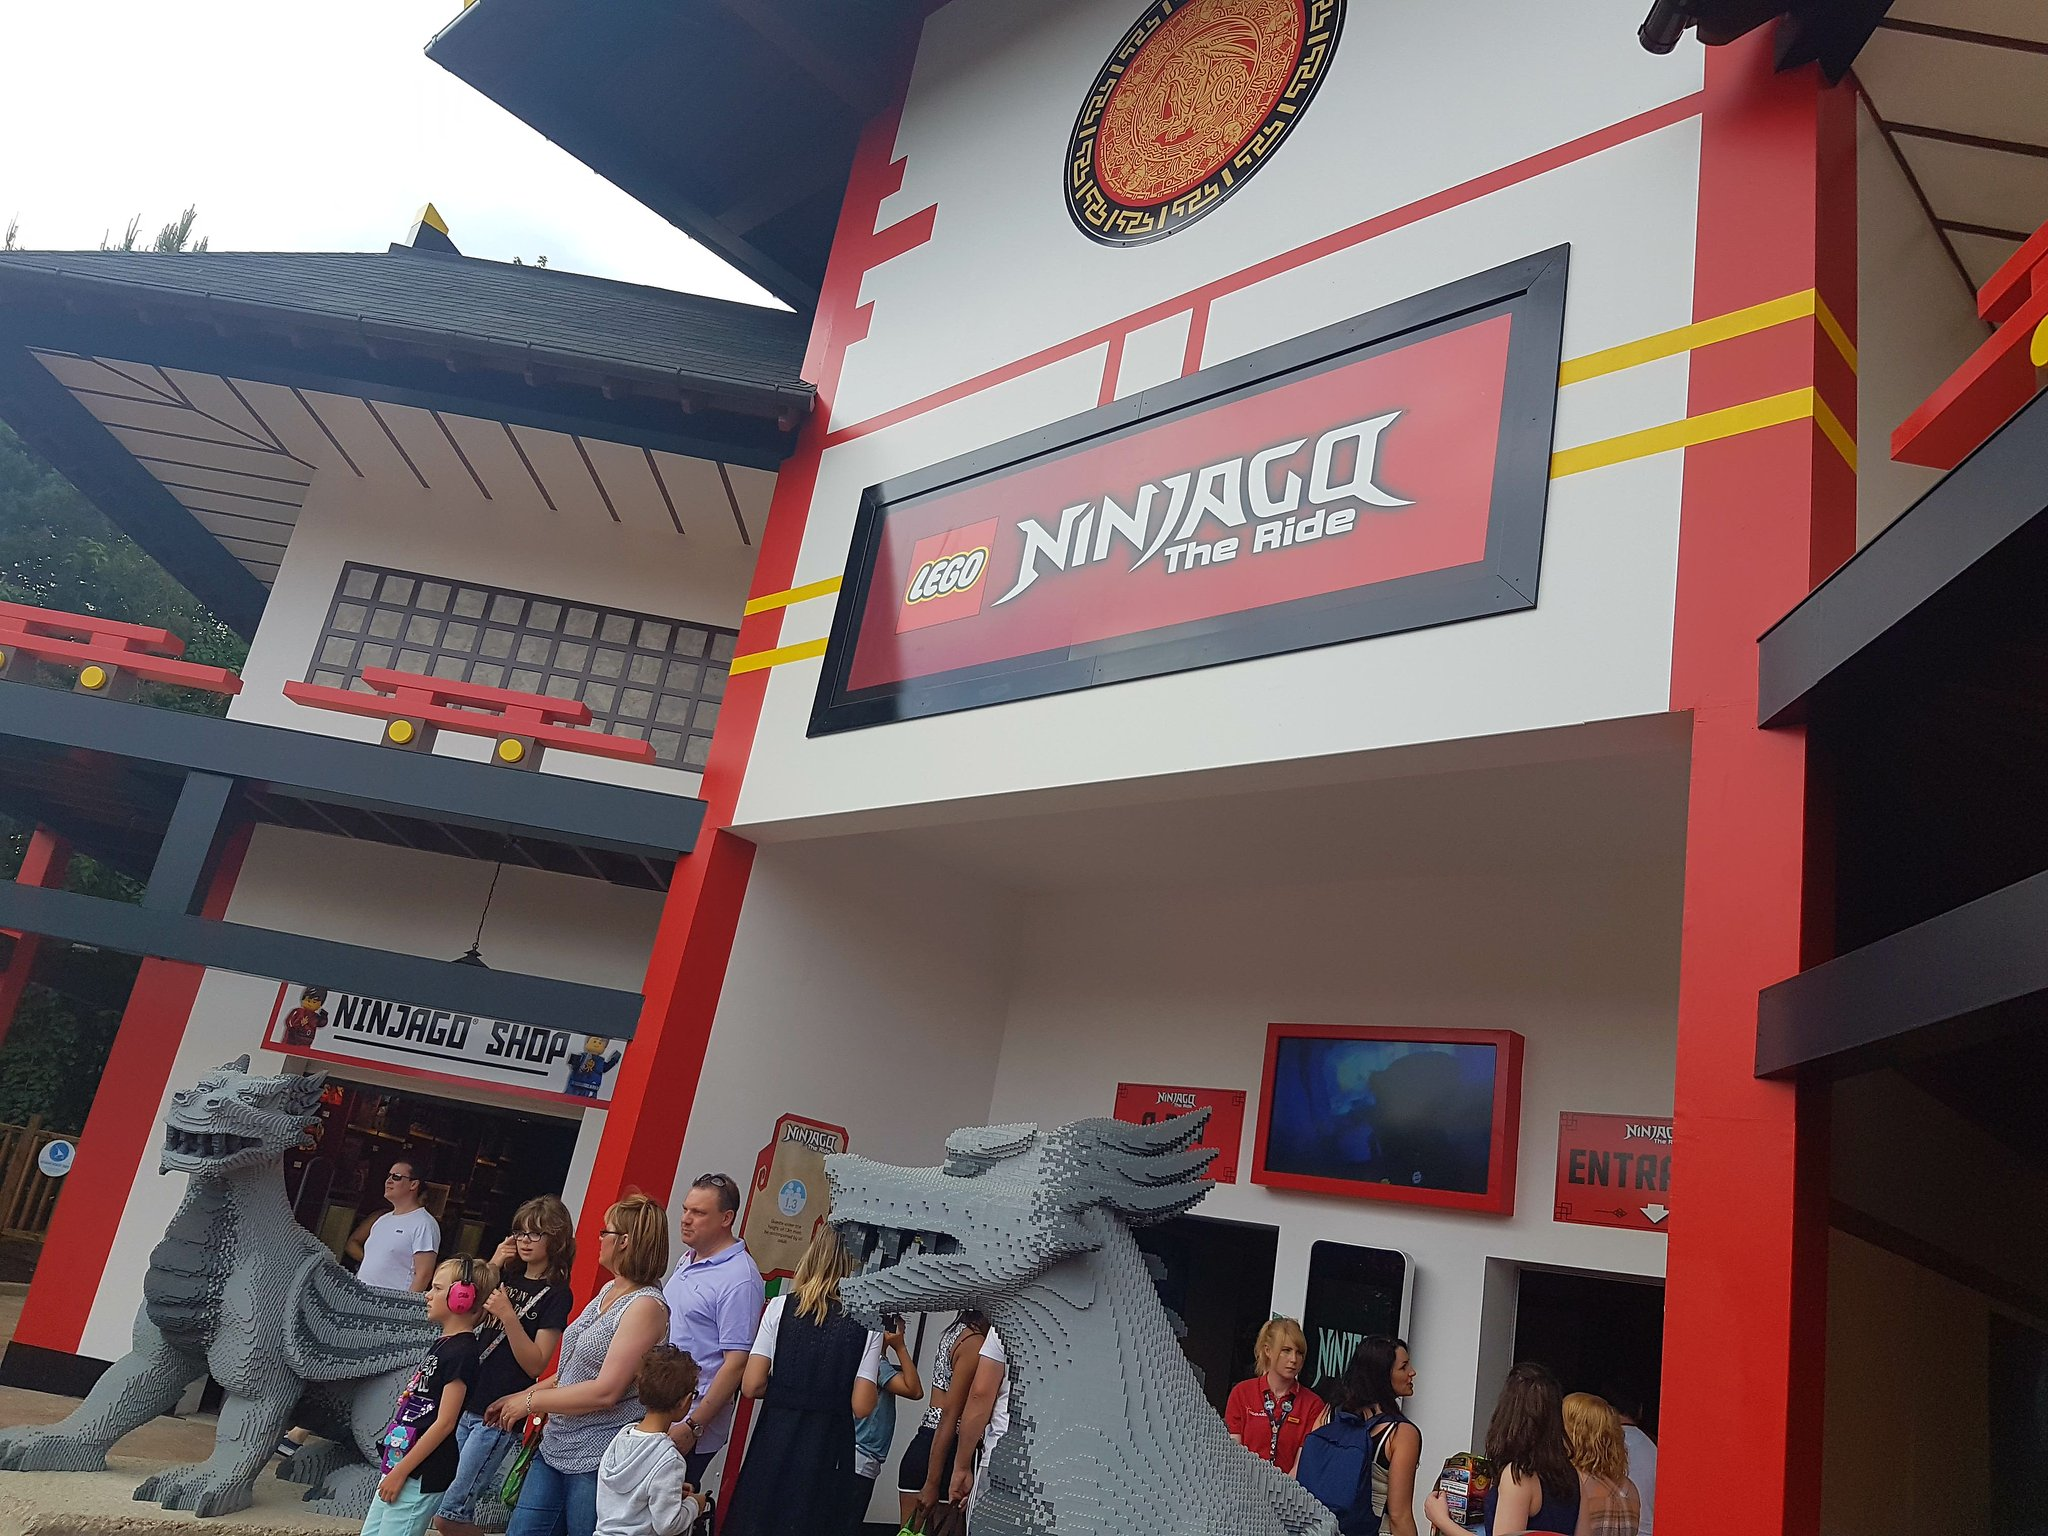 We've arrived at @LEGOLANDWindsor for the launch weekend of the new LEGO NINJAGO World! https://t.co/OK36B9YkrQ